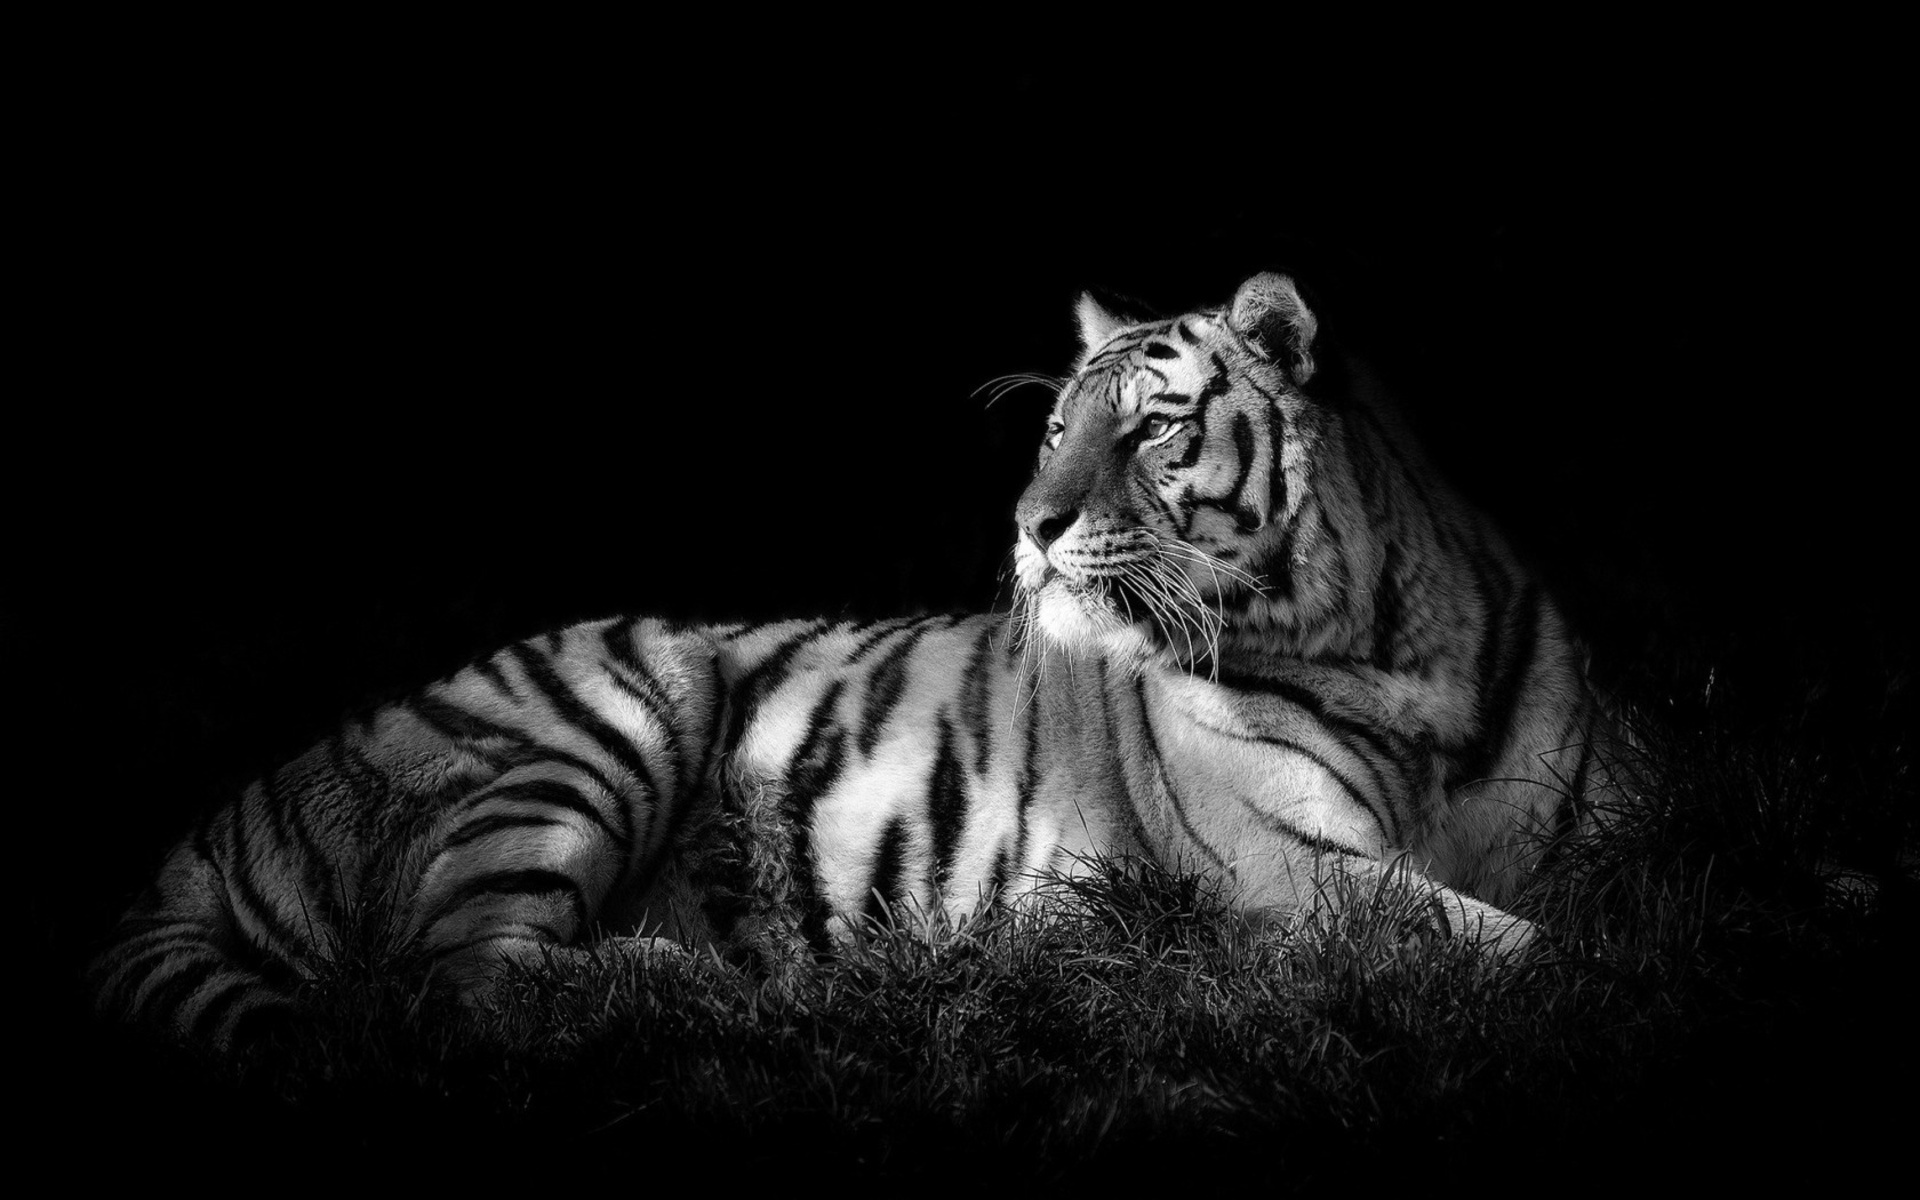 bw wallpaper tiger